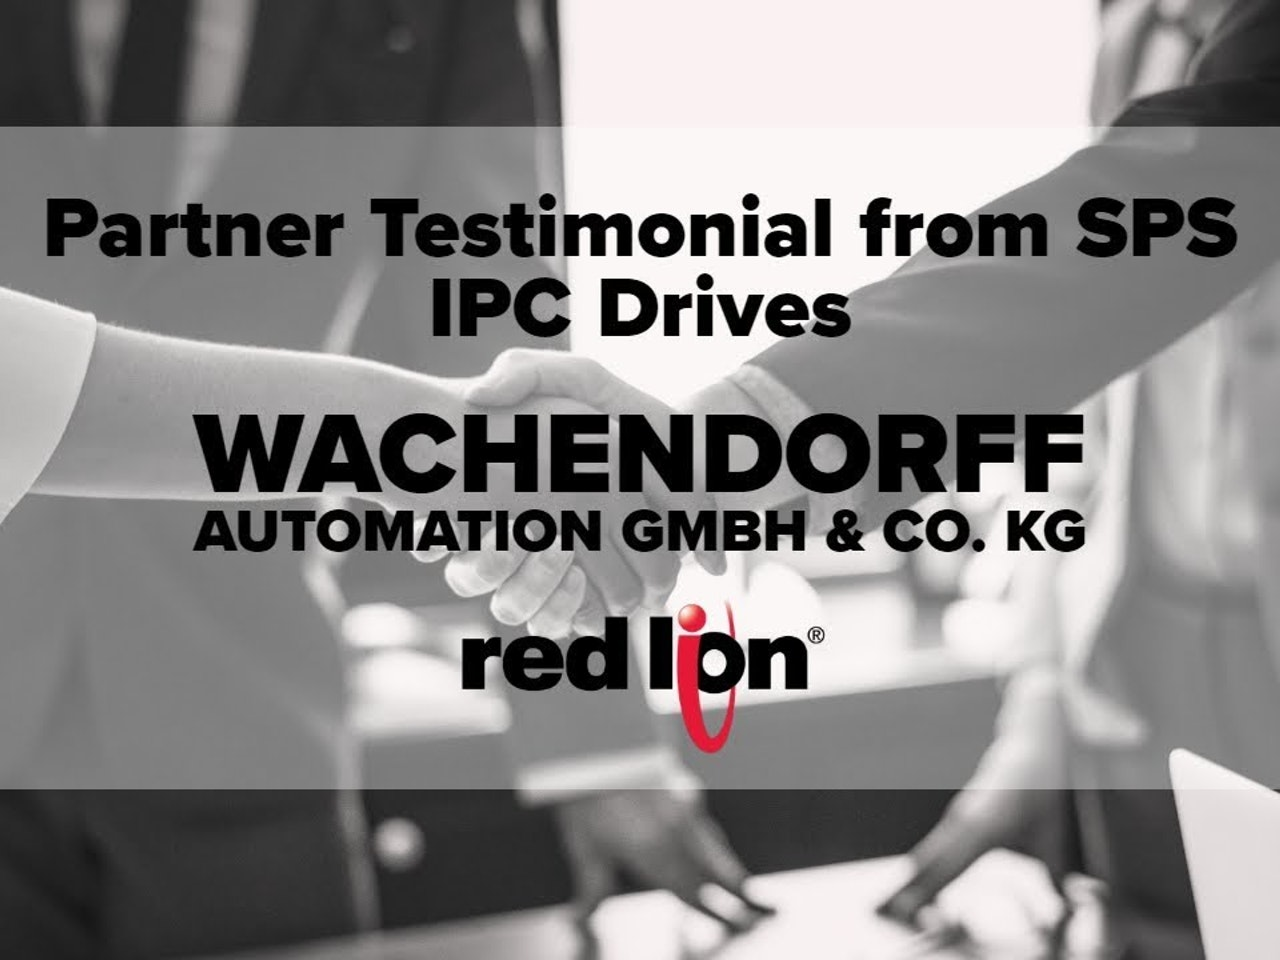 Partner Testimonial from Wachendorff Automation GmbH and Co. KG. - SPS IPC Drives